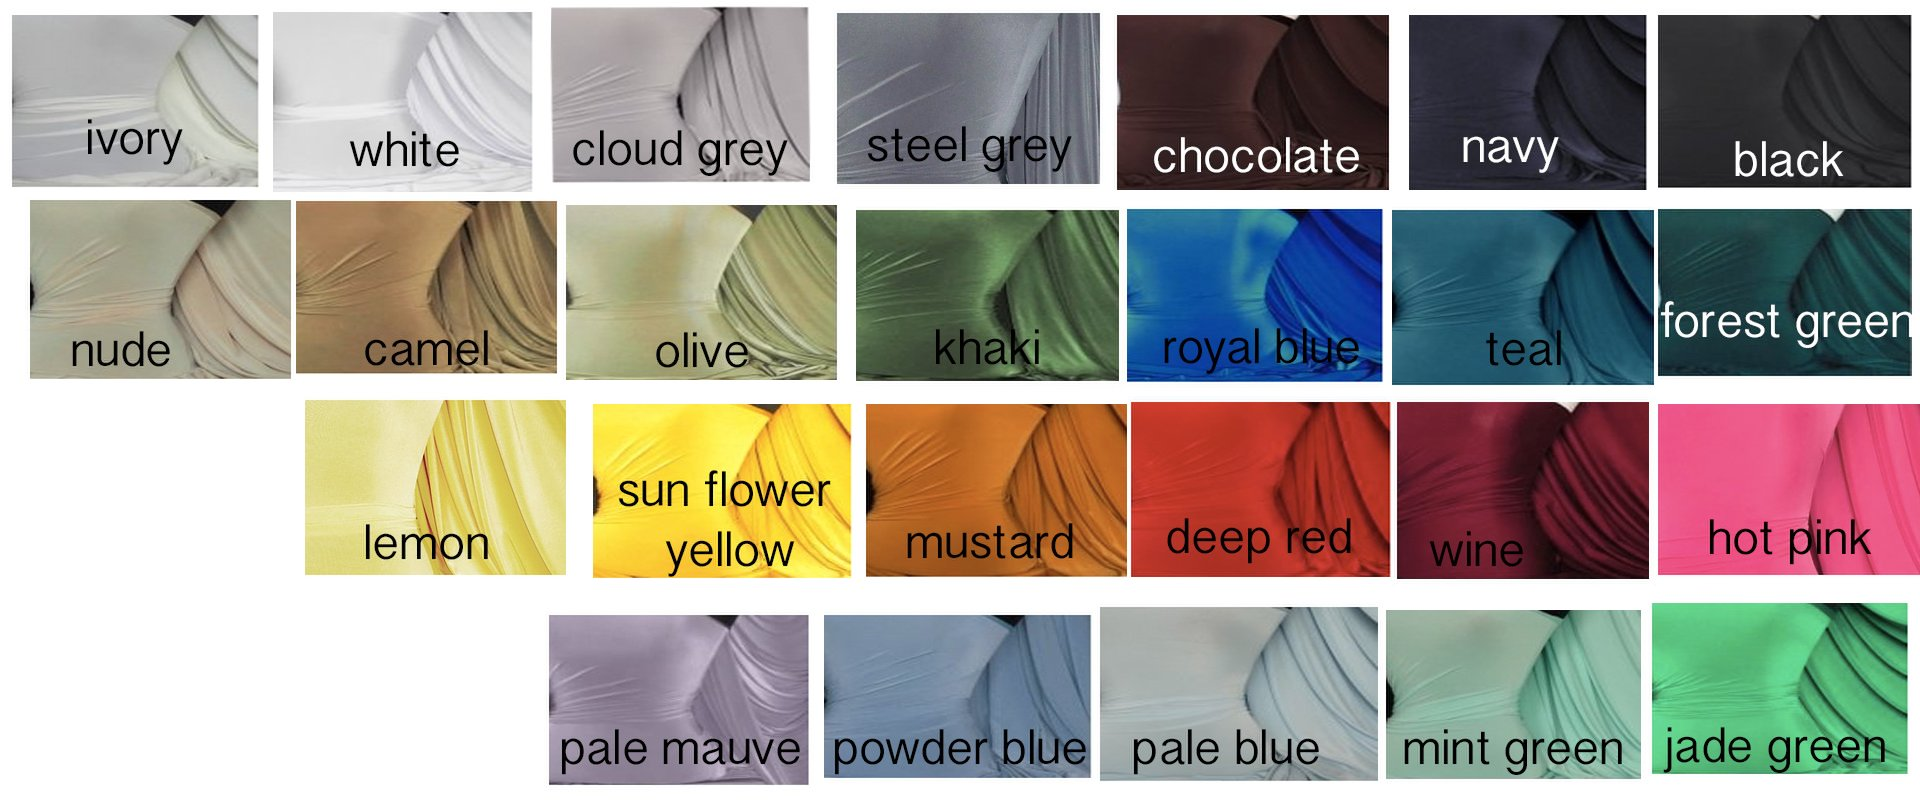 fa03327064 ... colour that you cant see on our chart please email us with an example  of the colour you d like and we will try and source it. enquires verityanne .co.uk